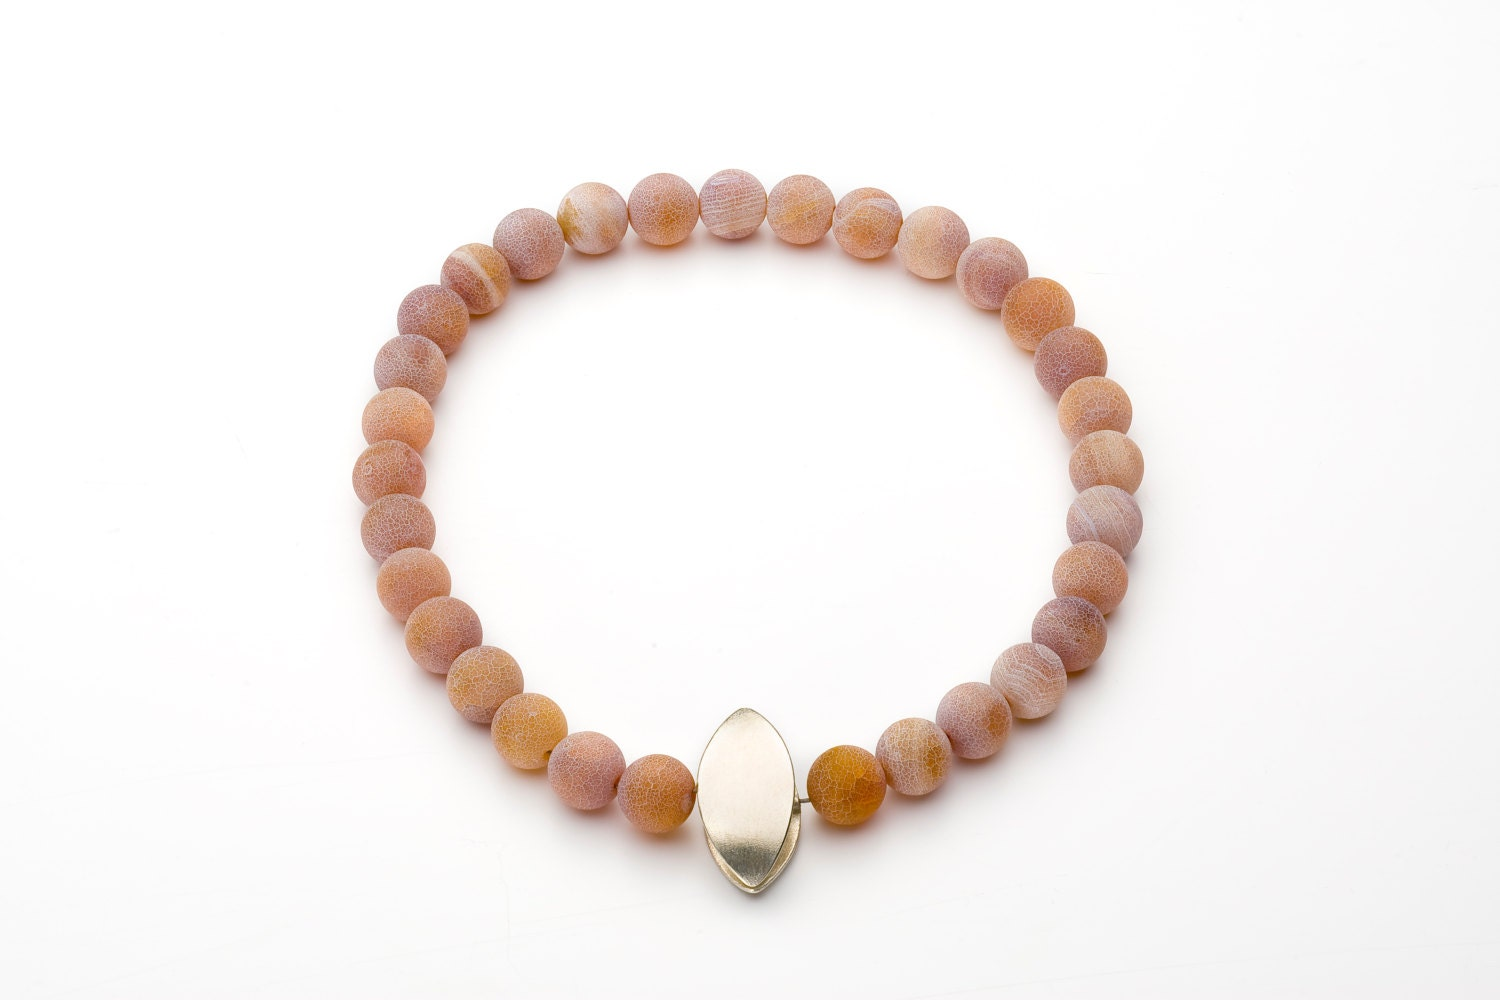 Chain, 925/000 Silver, Iris agate, beige pink, with magnetic closure ...